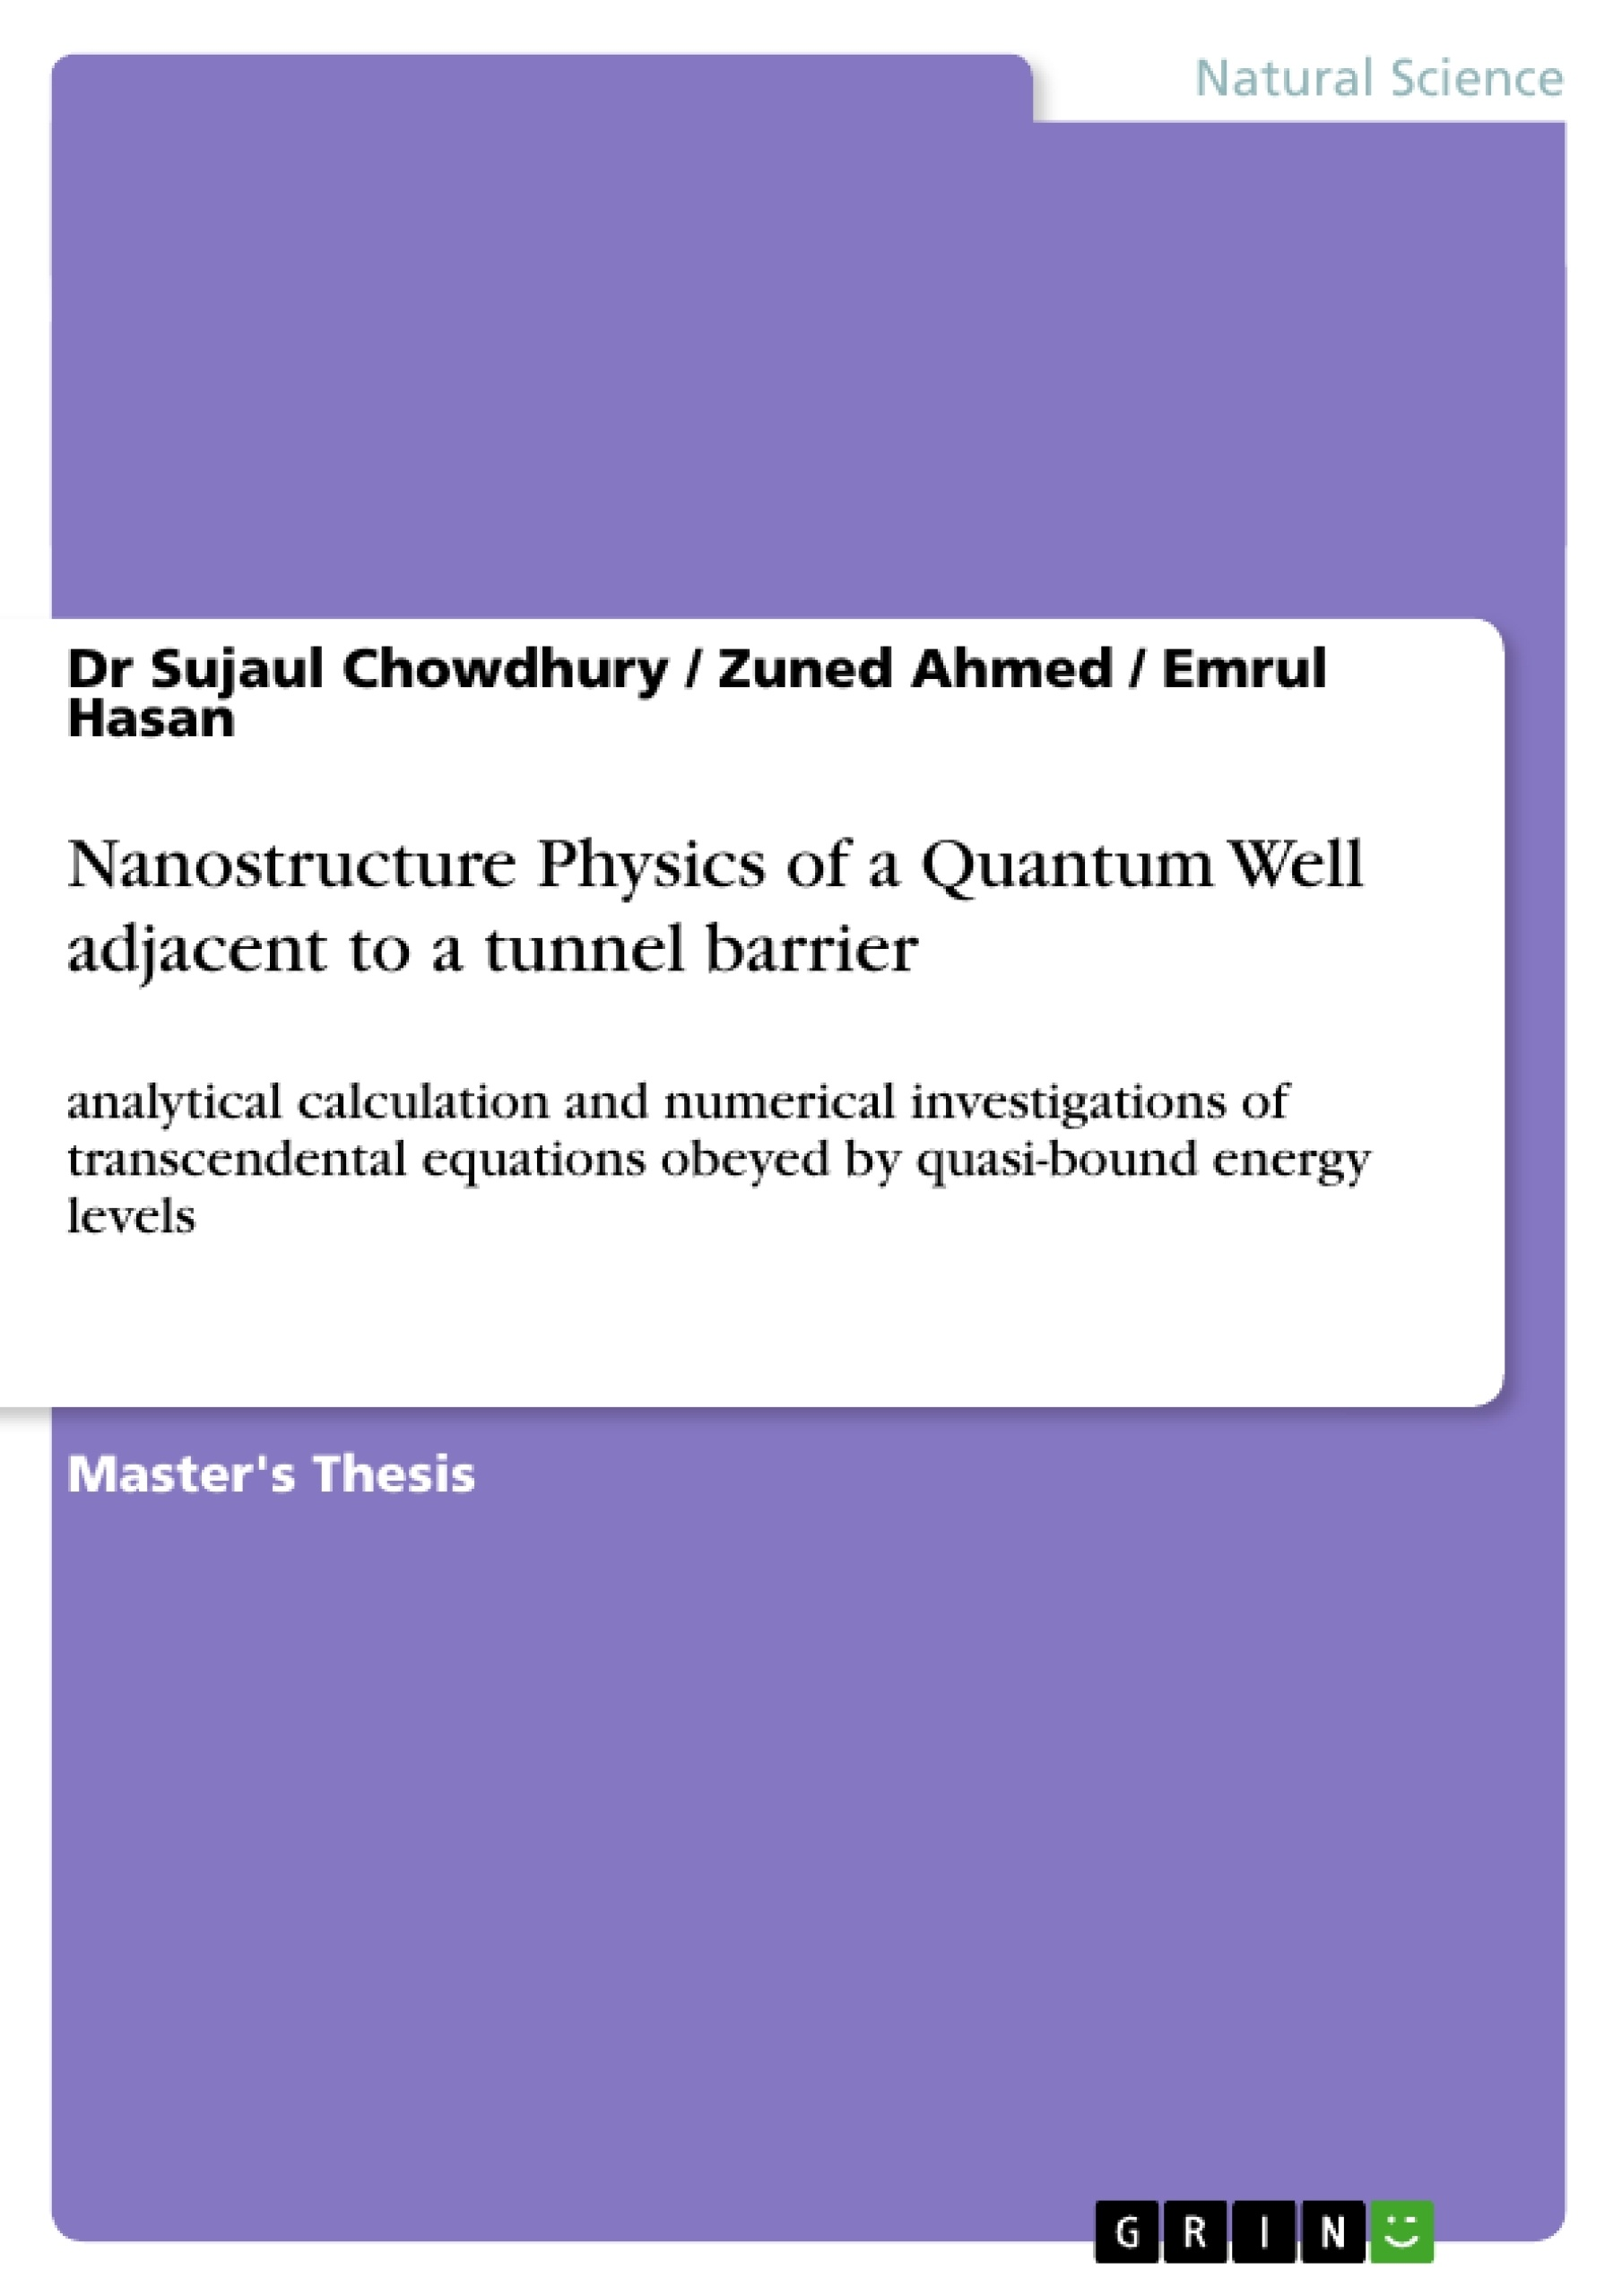 Title: Nanostructure Physics of a Quantum Well adjacent to a tunnel barrier